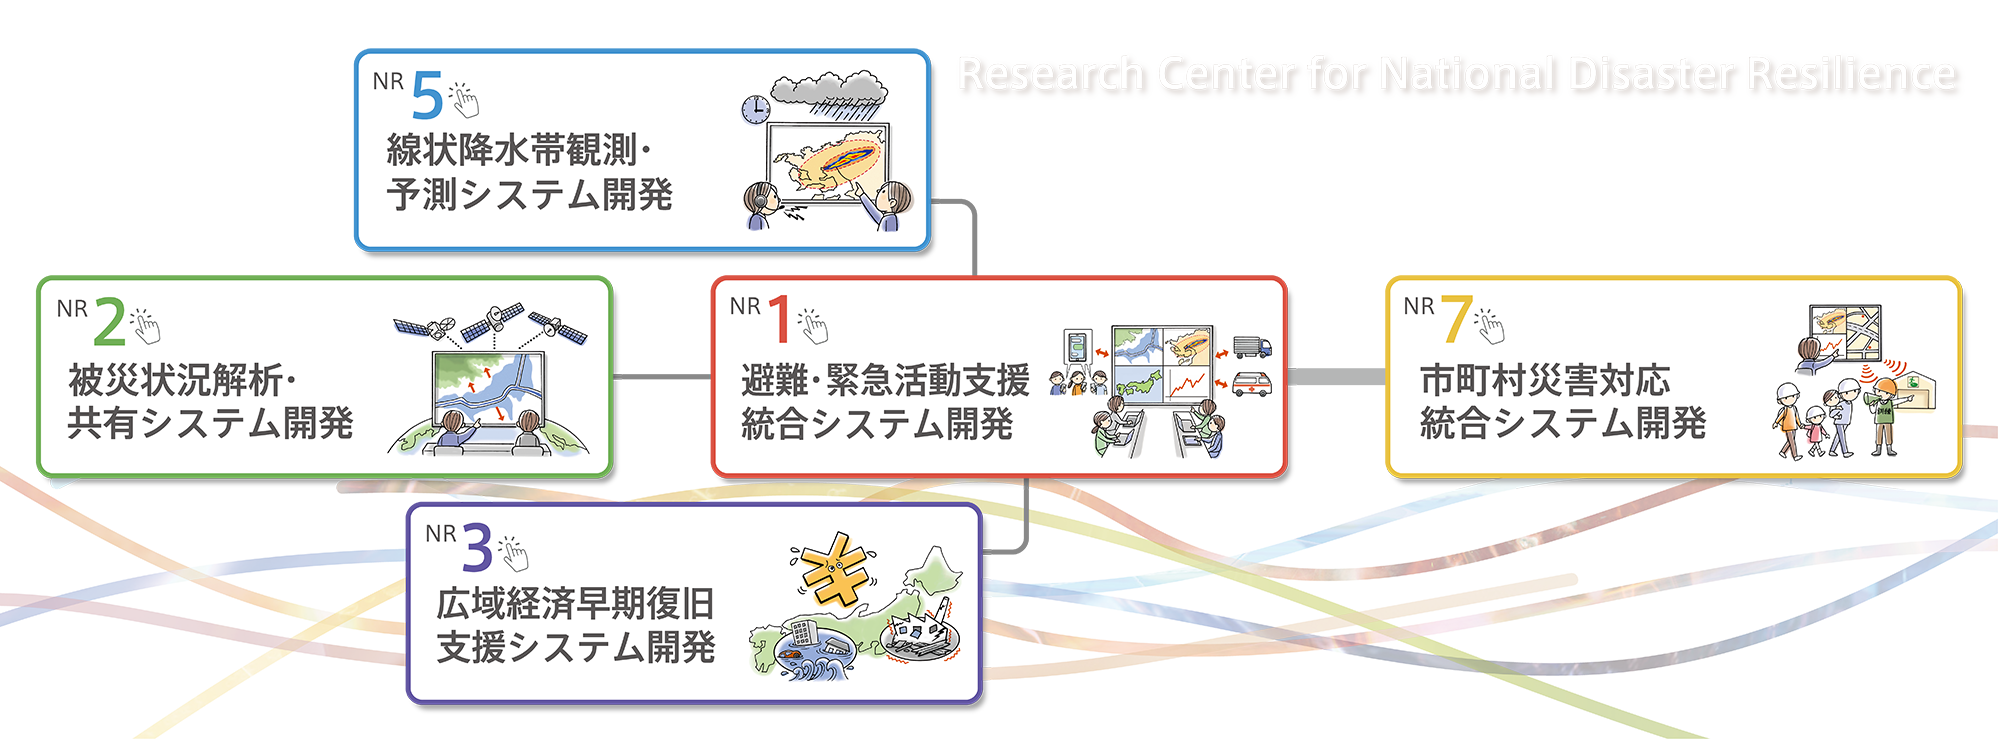 Research Center for National Disaster Resilience